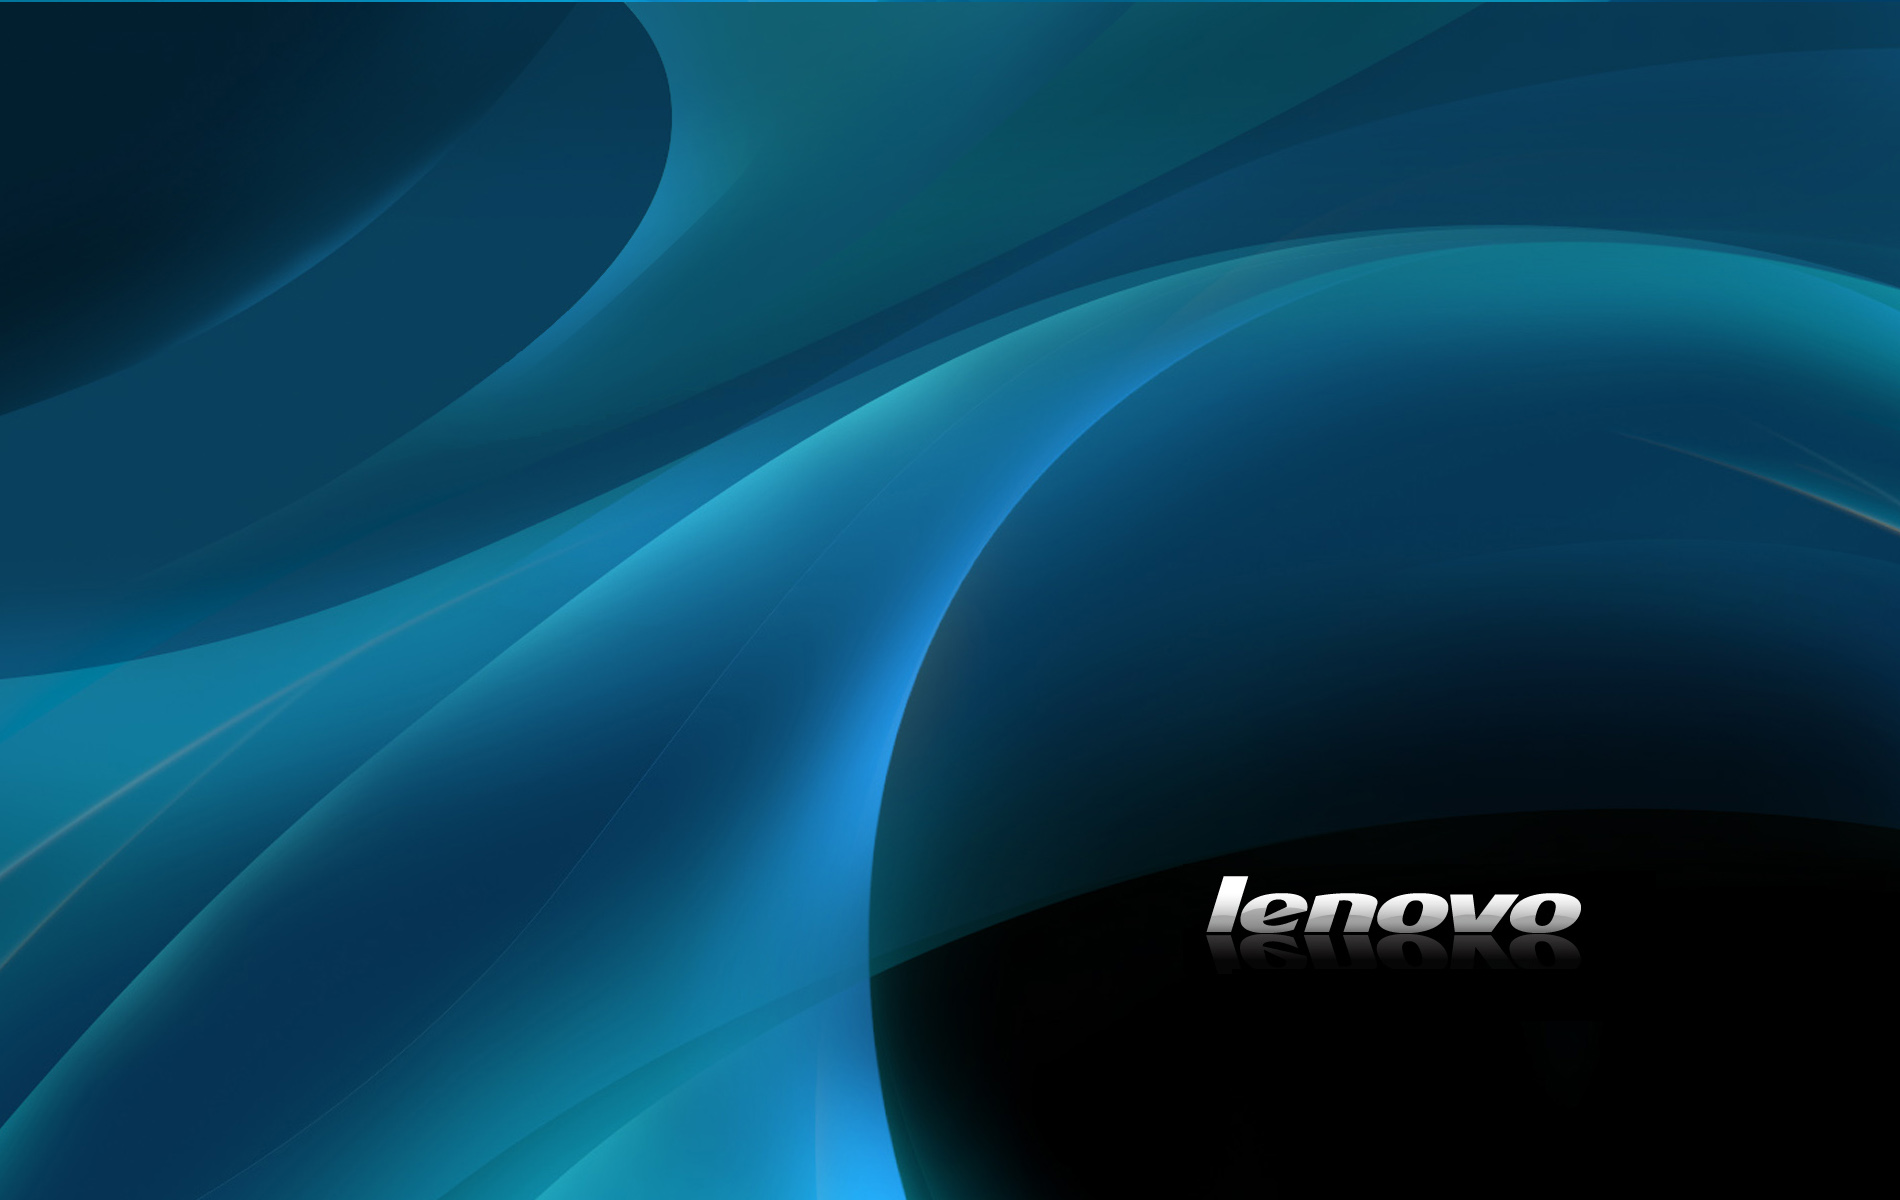 Free Lenovo wallpapers Images